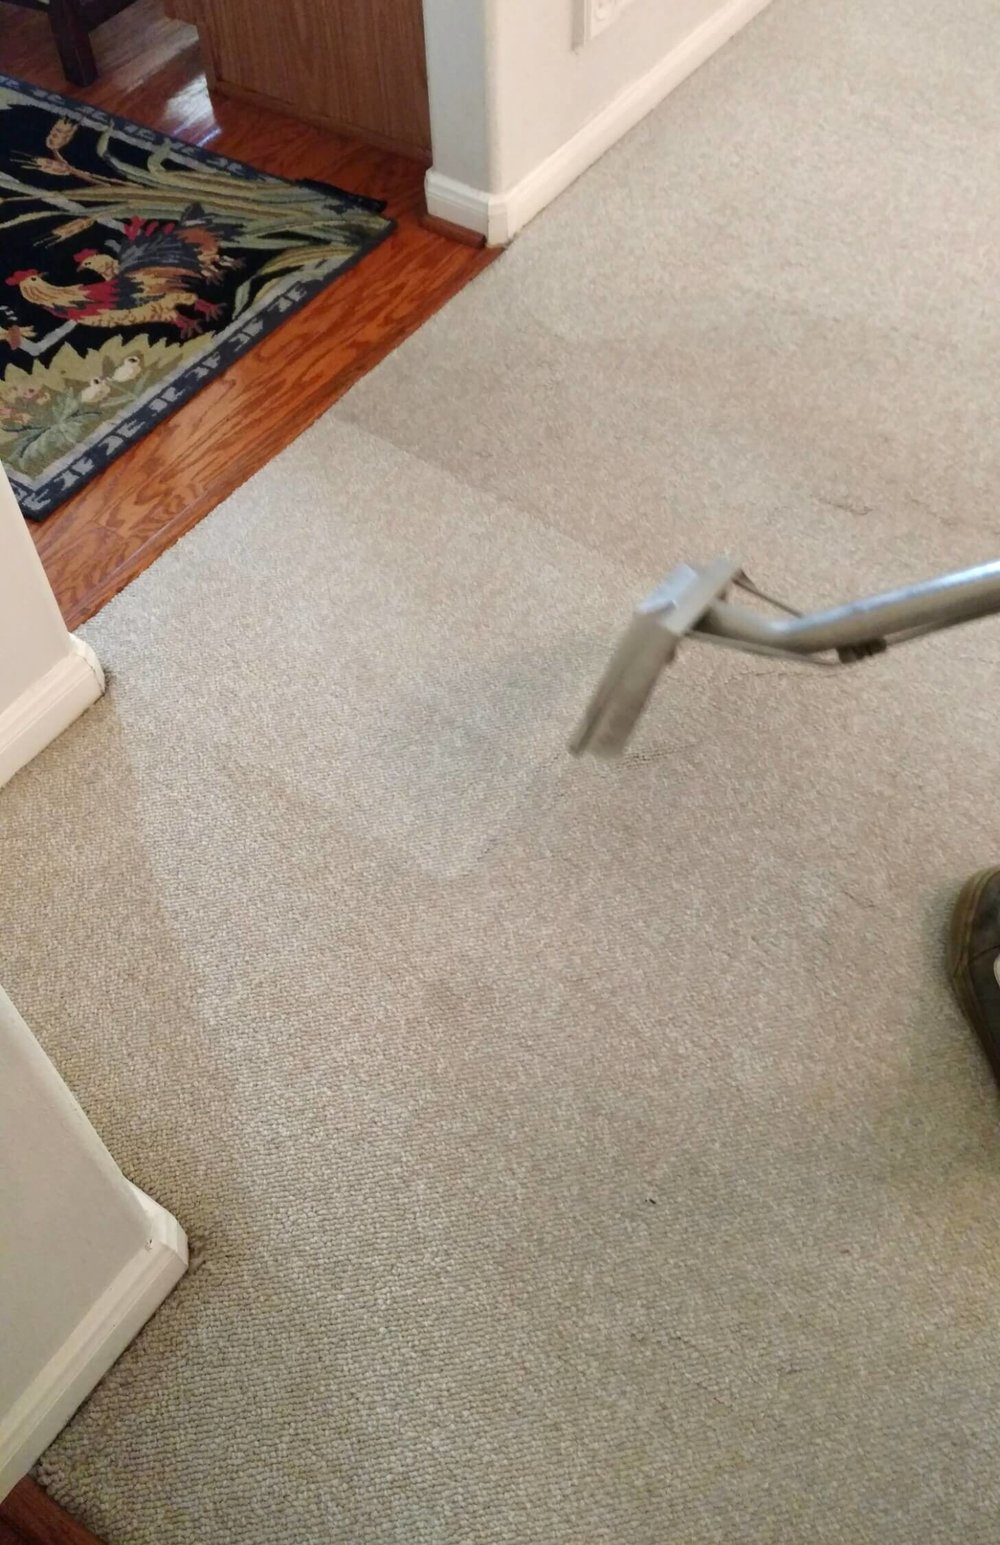 Steam cleaning can brighten up the carpet and help sell a house. #stagedtosell #homestaging #sellingahouse #stagingtosell #stagingideas